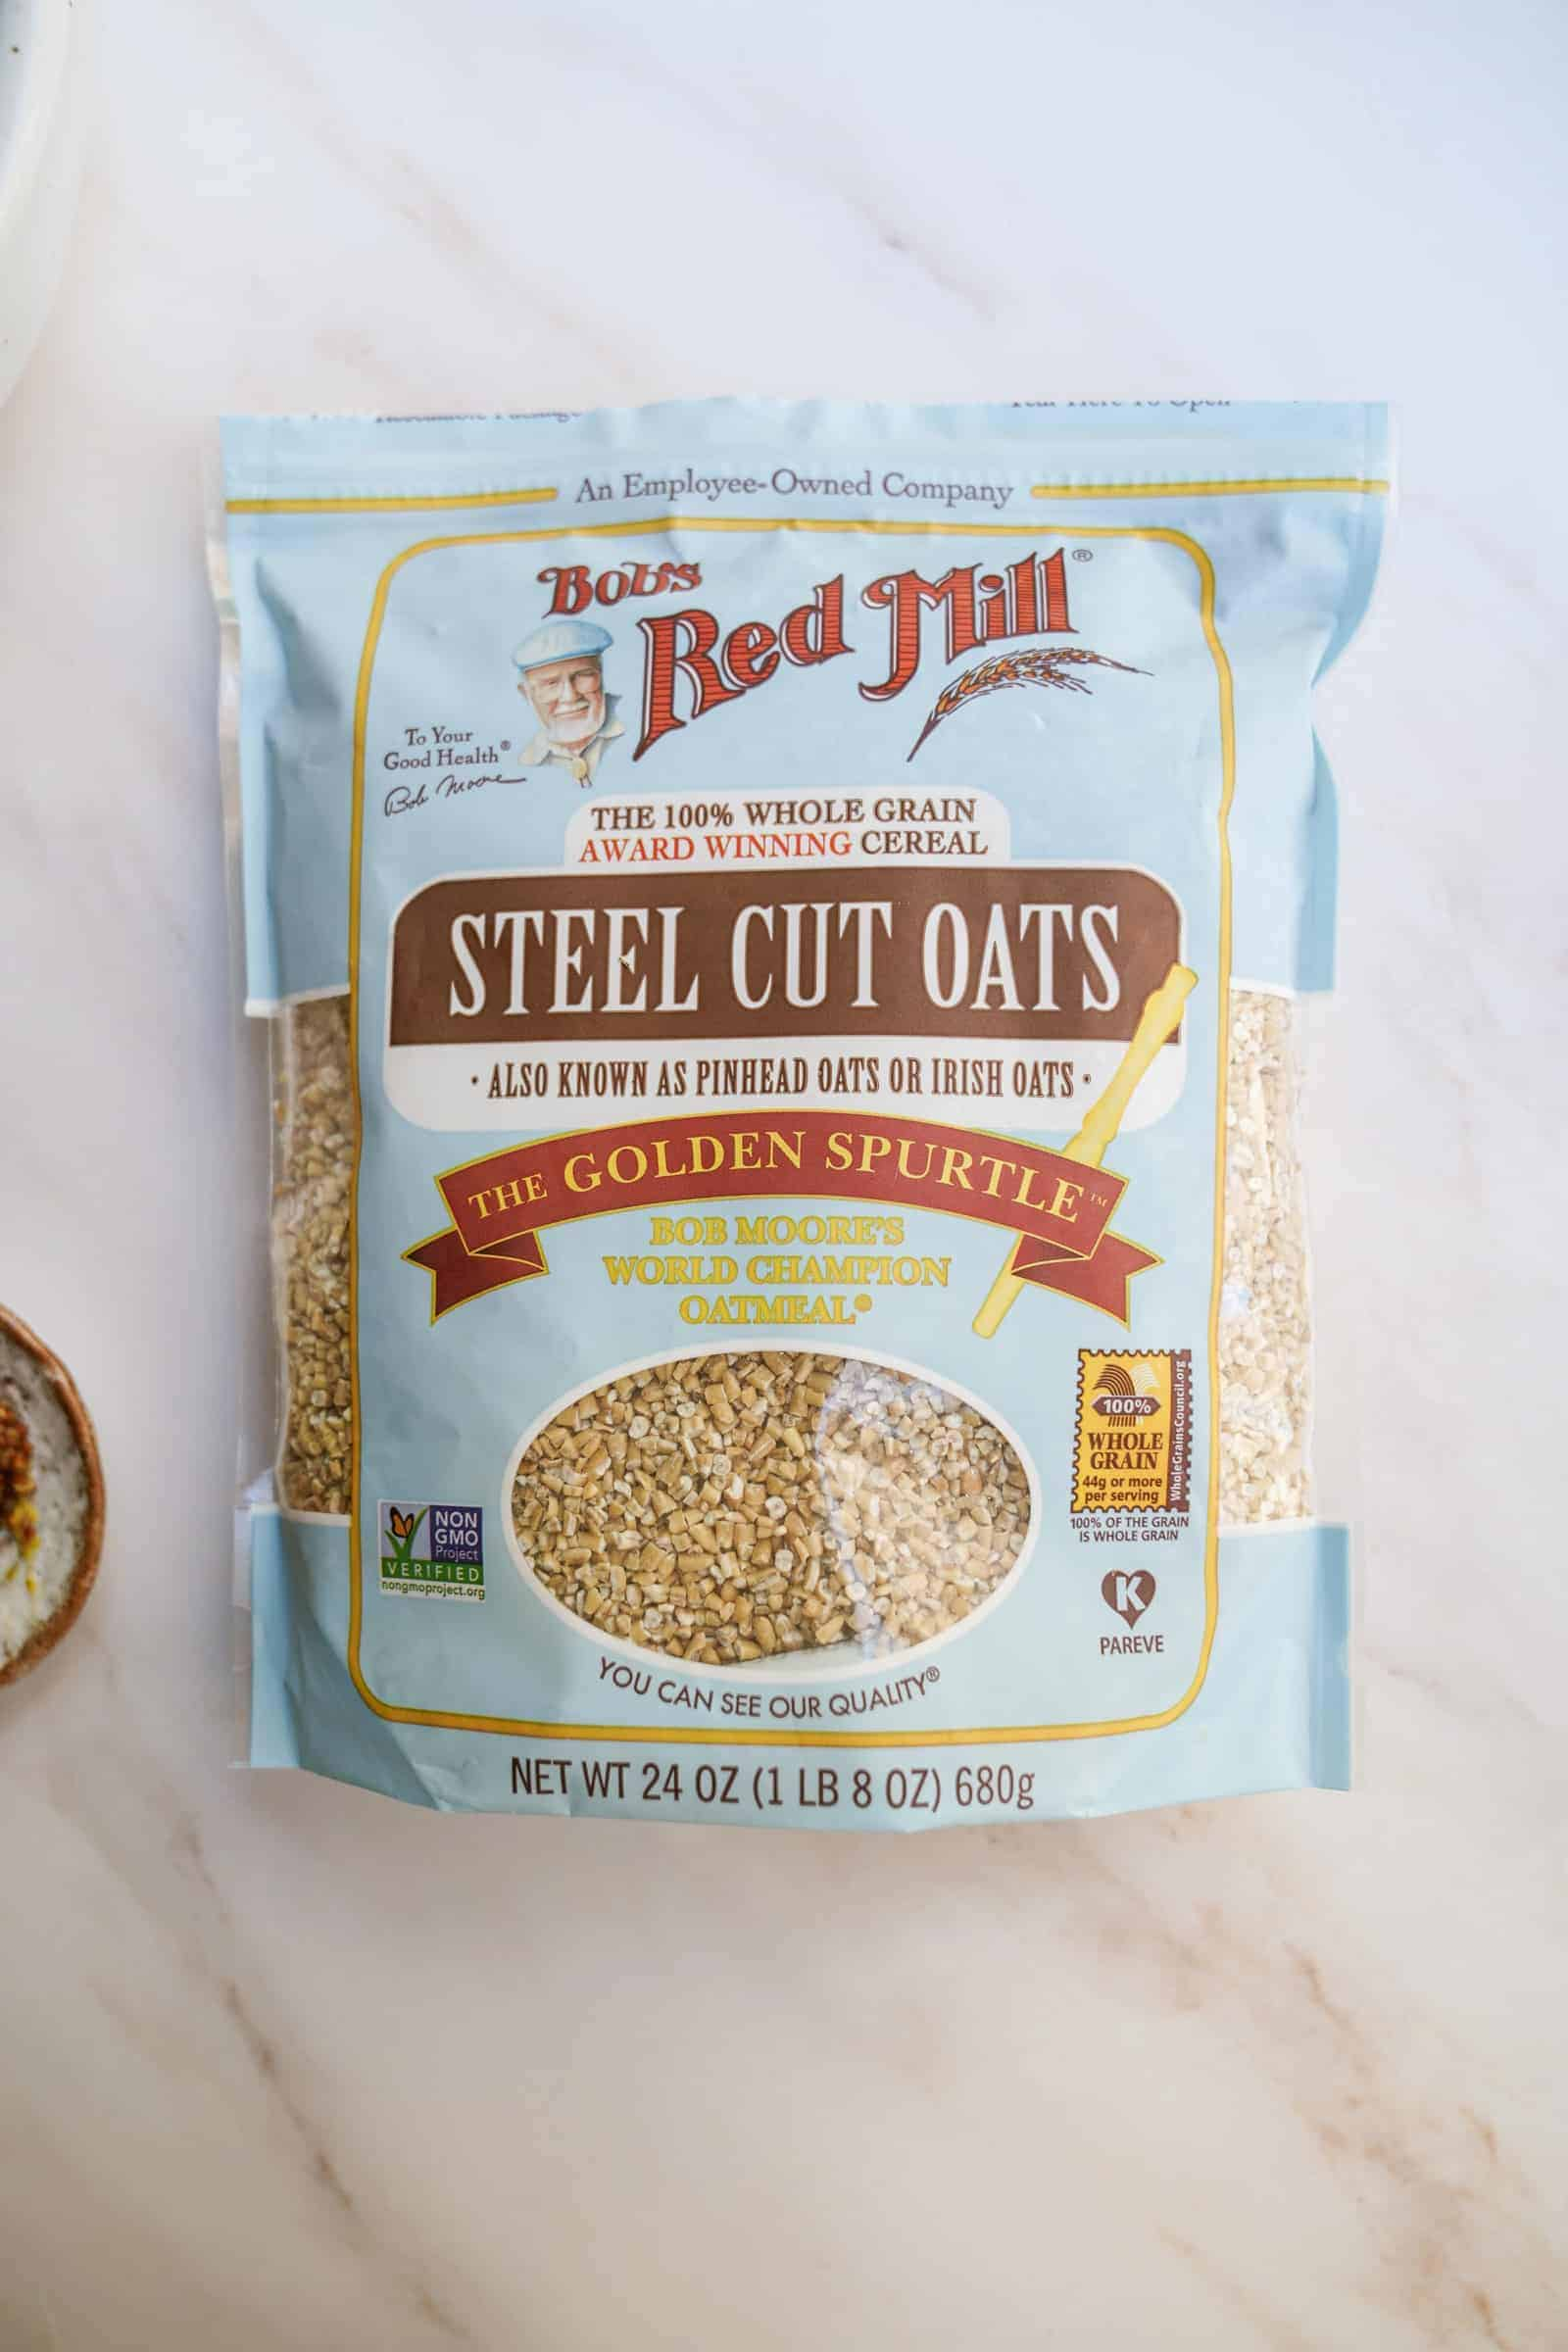 Steel Cut Oats in a bag from Bob's Red Mill